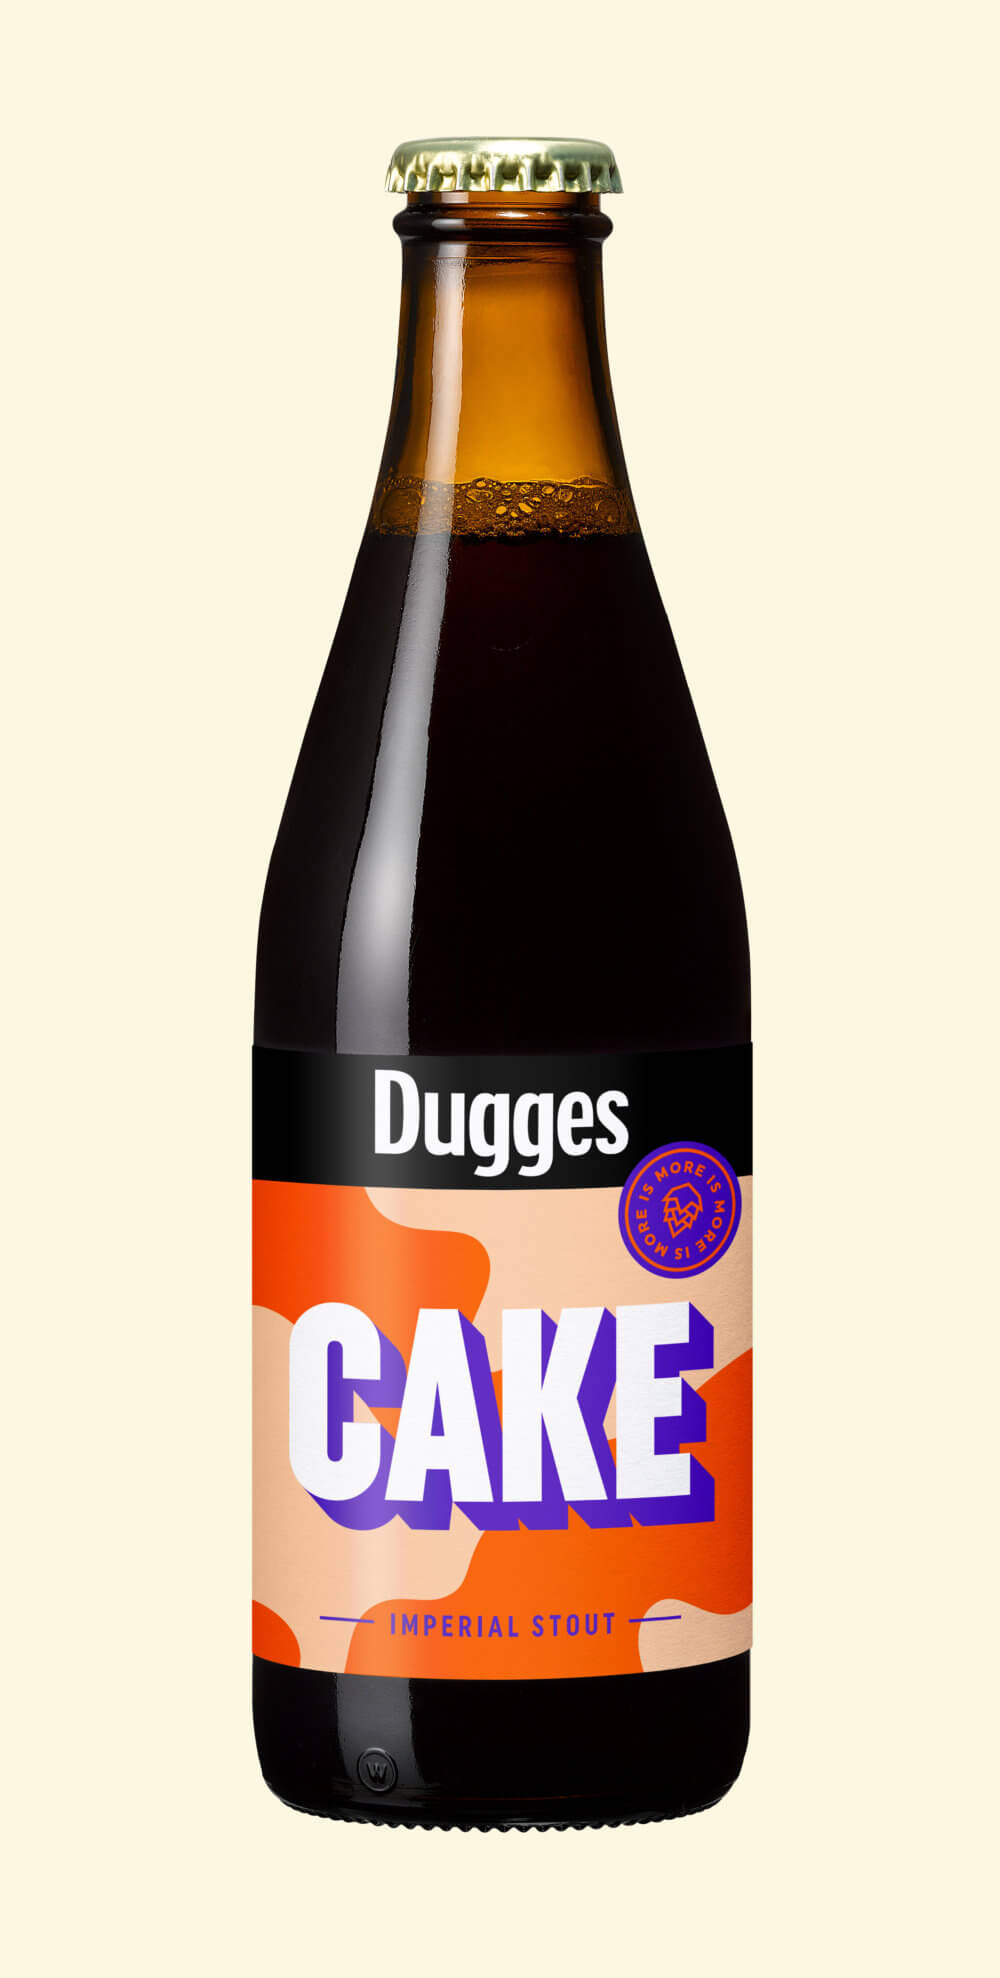 Cake - Dugges Bryggeri - Cardamon, Vanilla and Almond Imperial Stout, 10%, 330ml Bottle